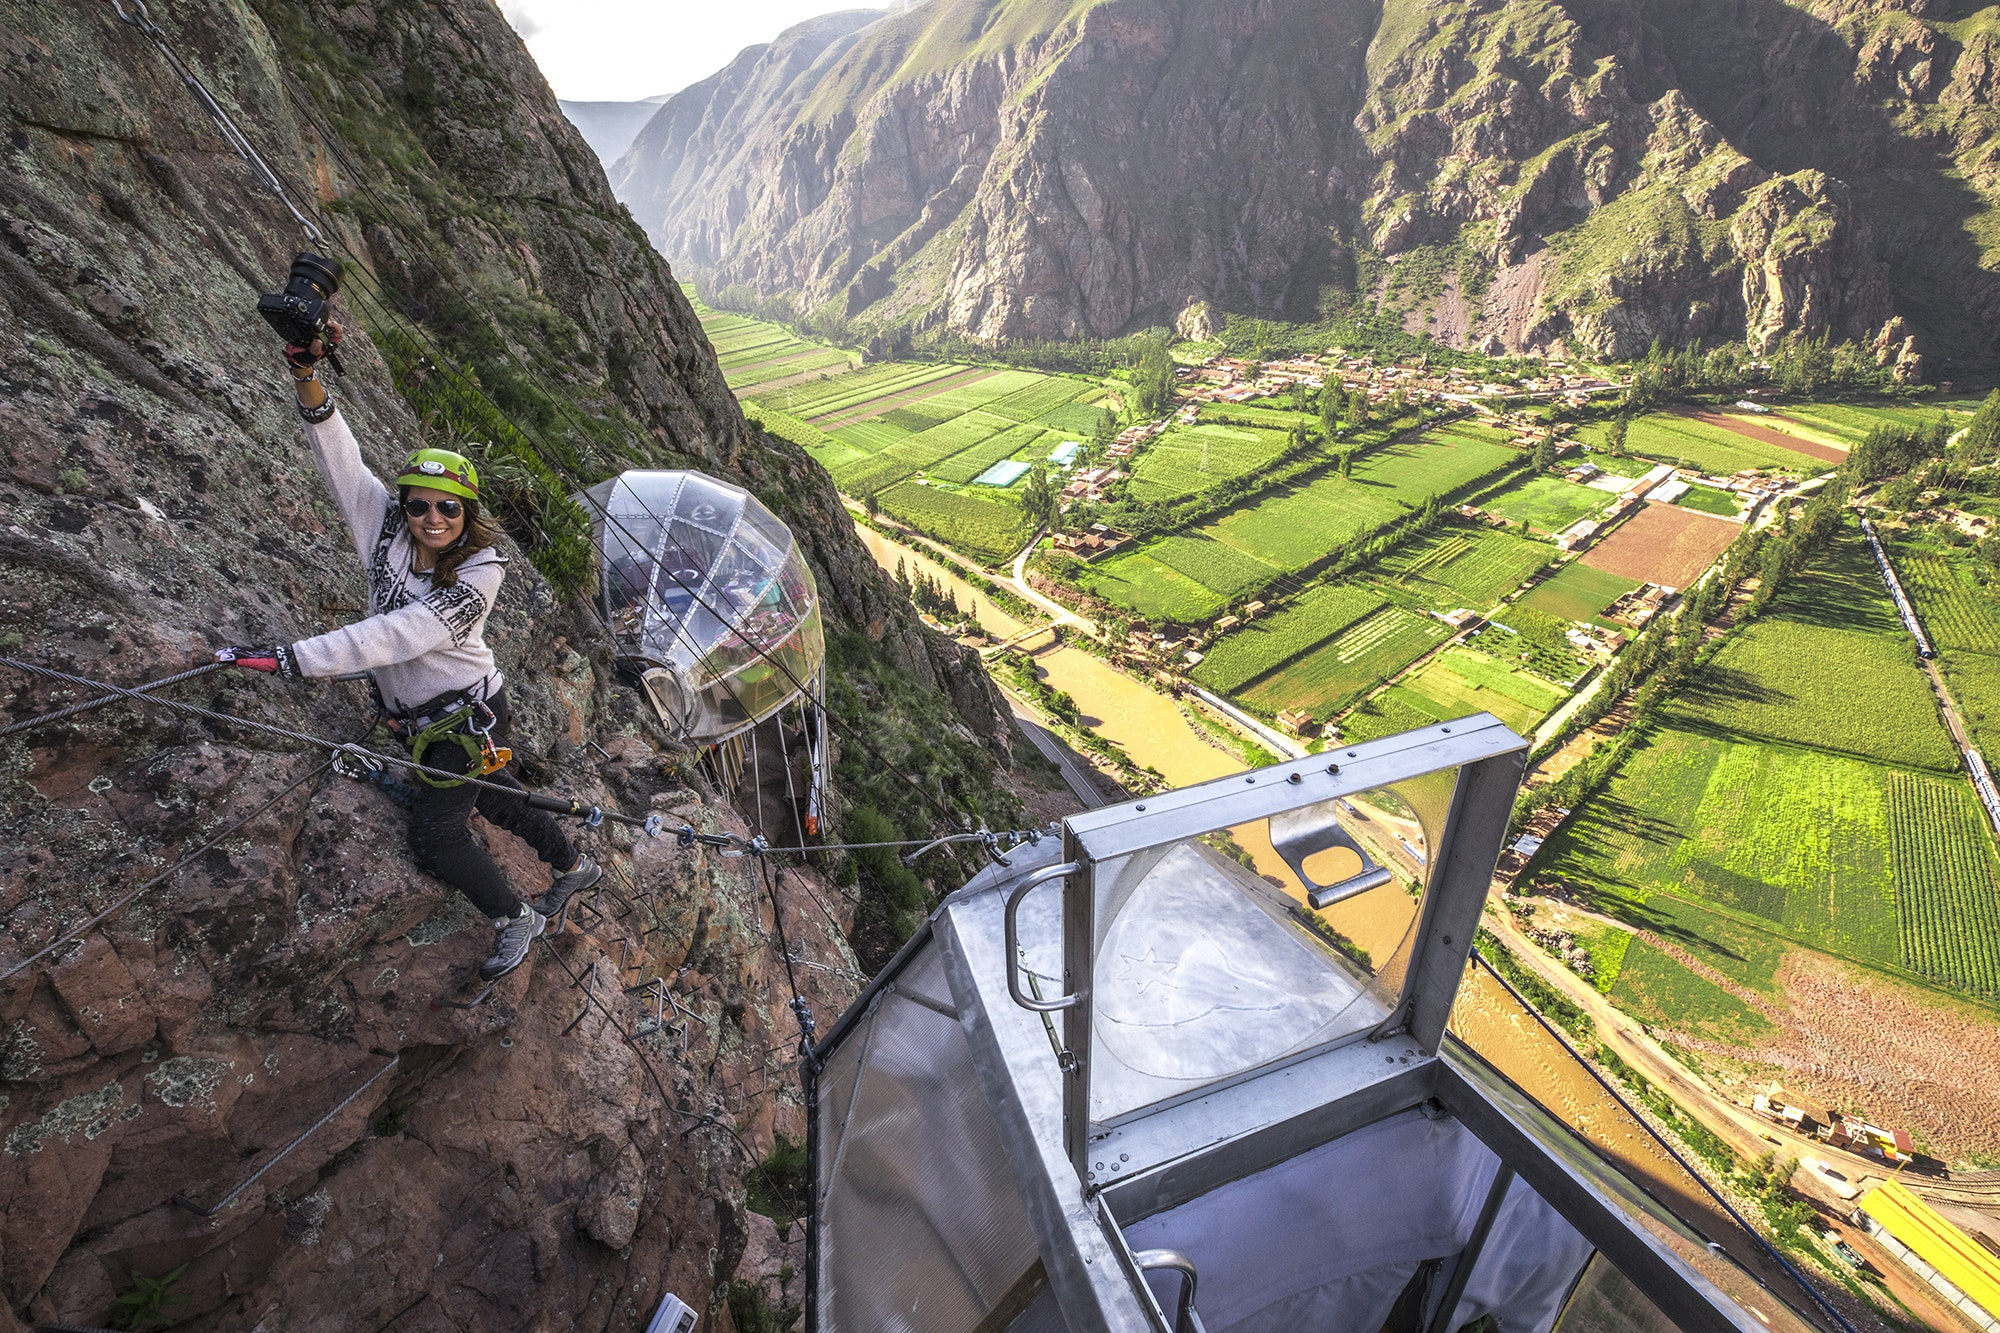 Finish a via ferrata adventure in Peru's Sacred Valley with a night at SkyLodge.